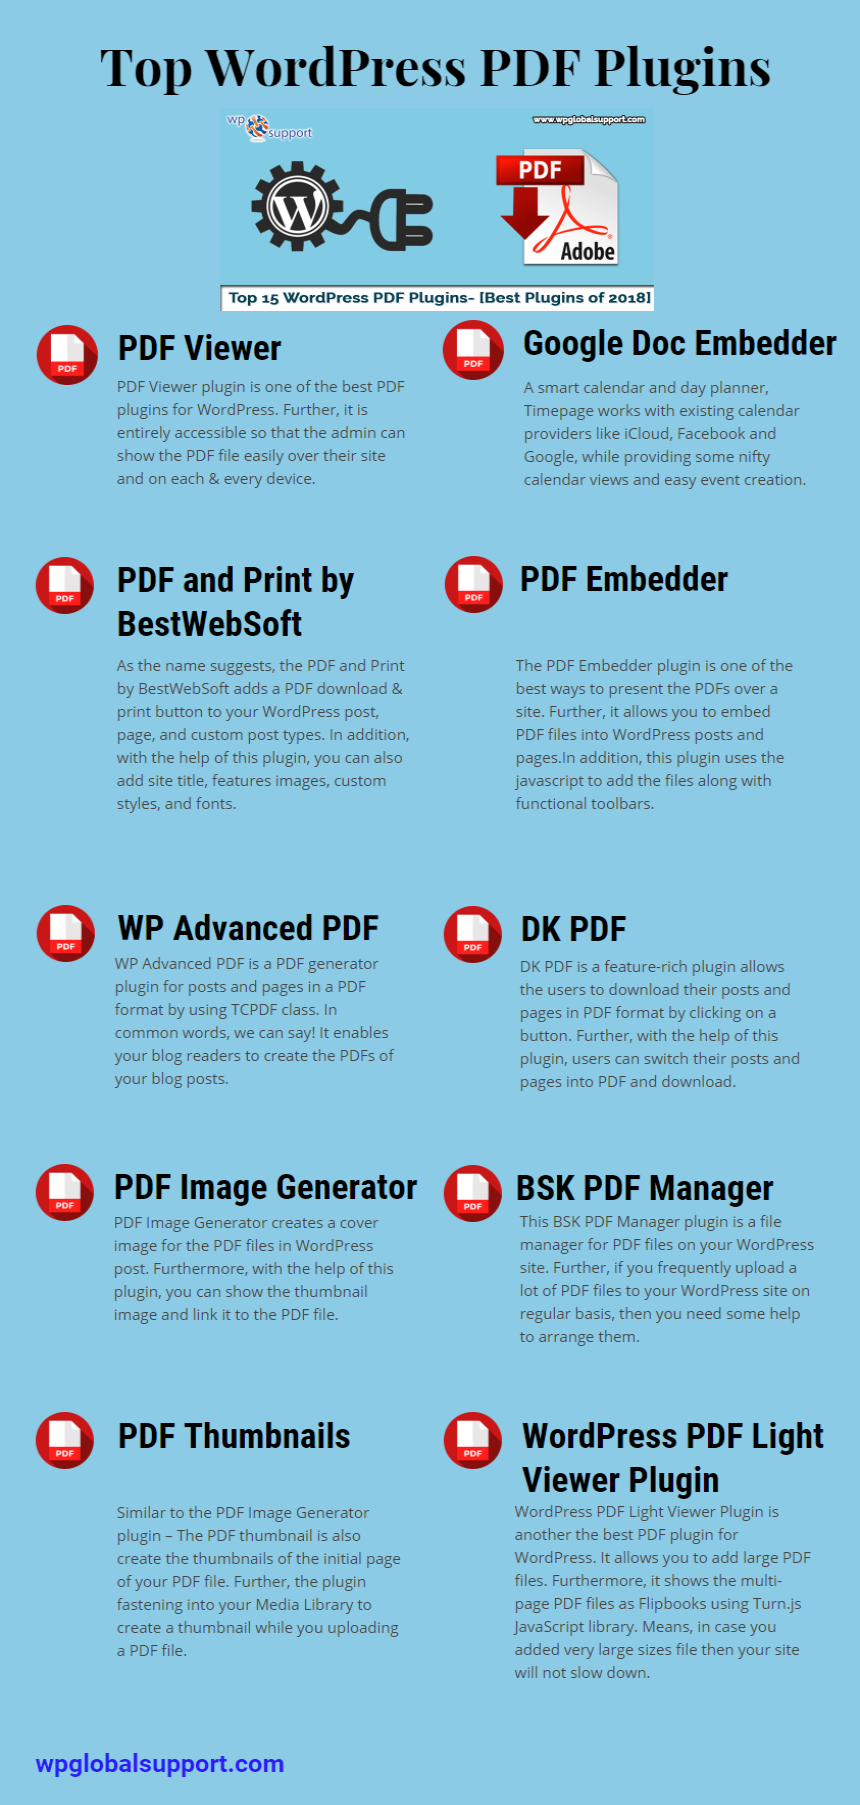 Why is not a PDF viewer in WordPress where visitors can view a full